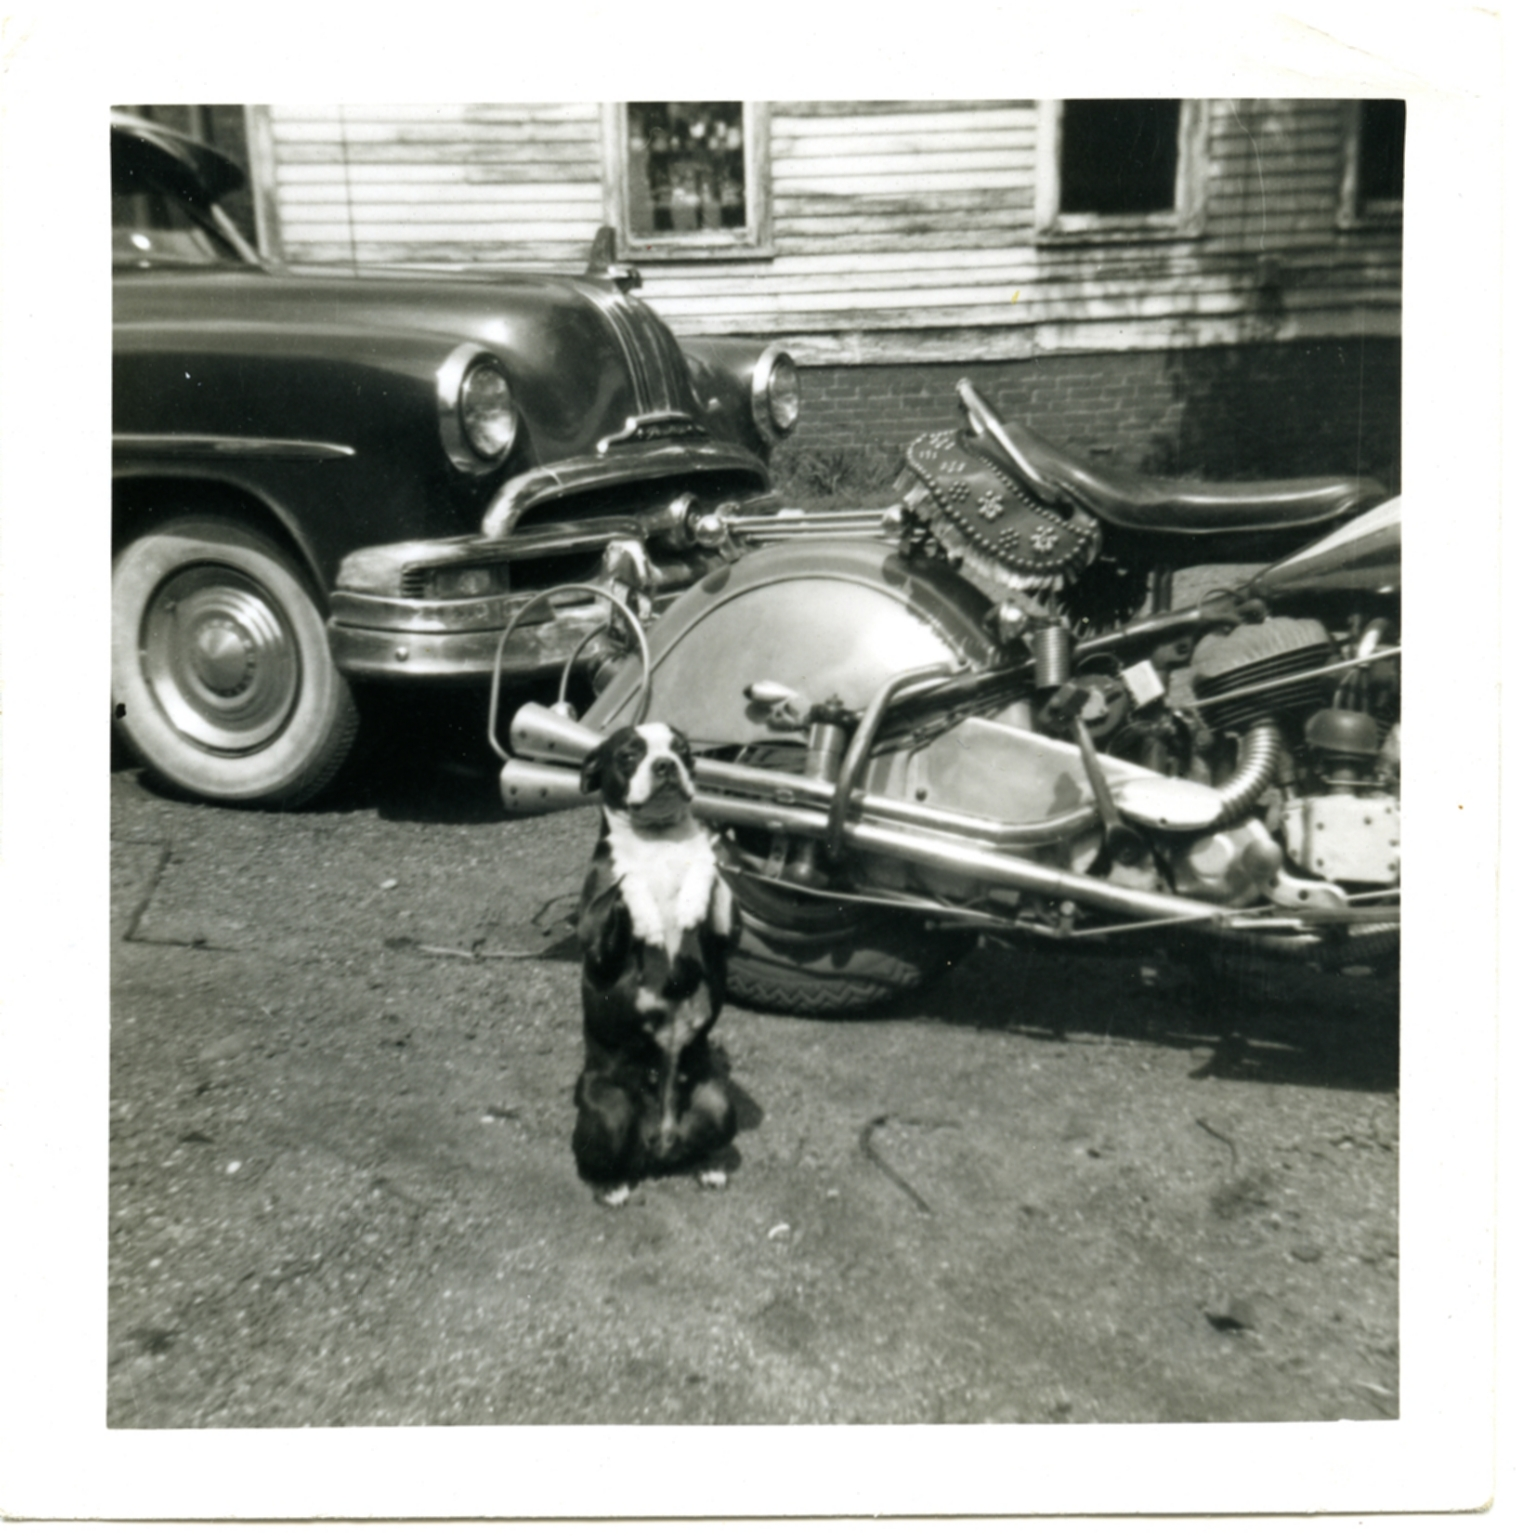 The Dog and the Motorcycle